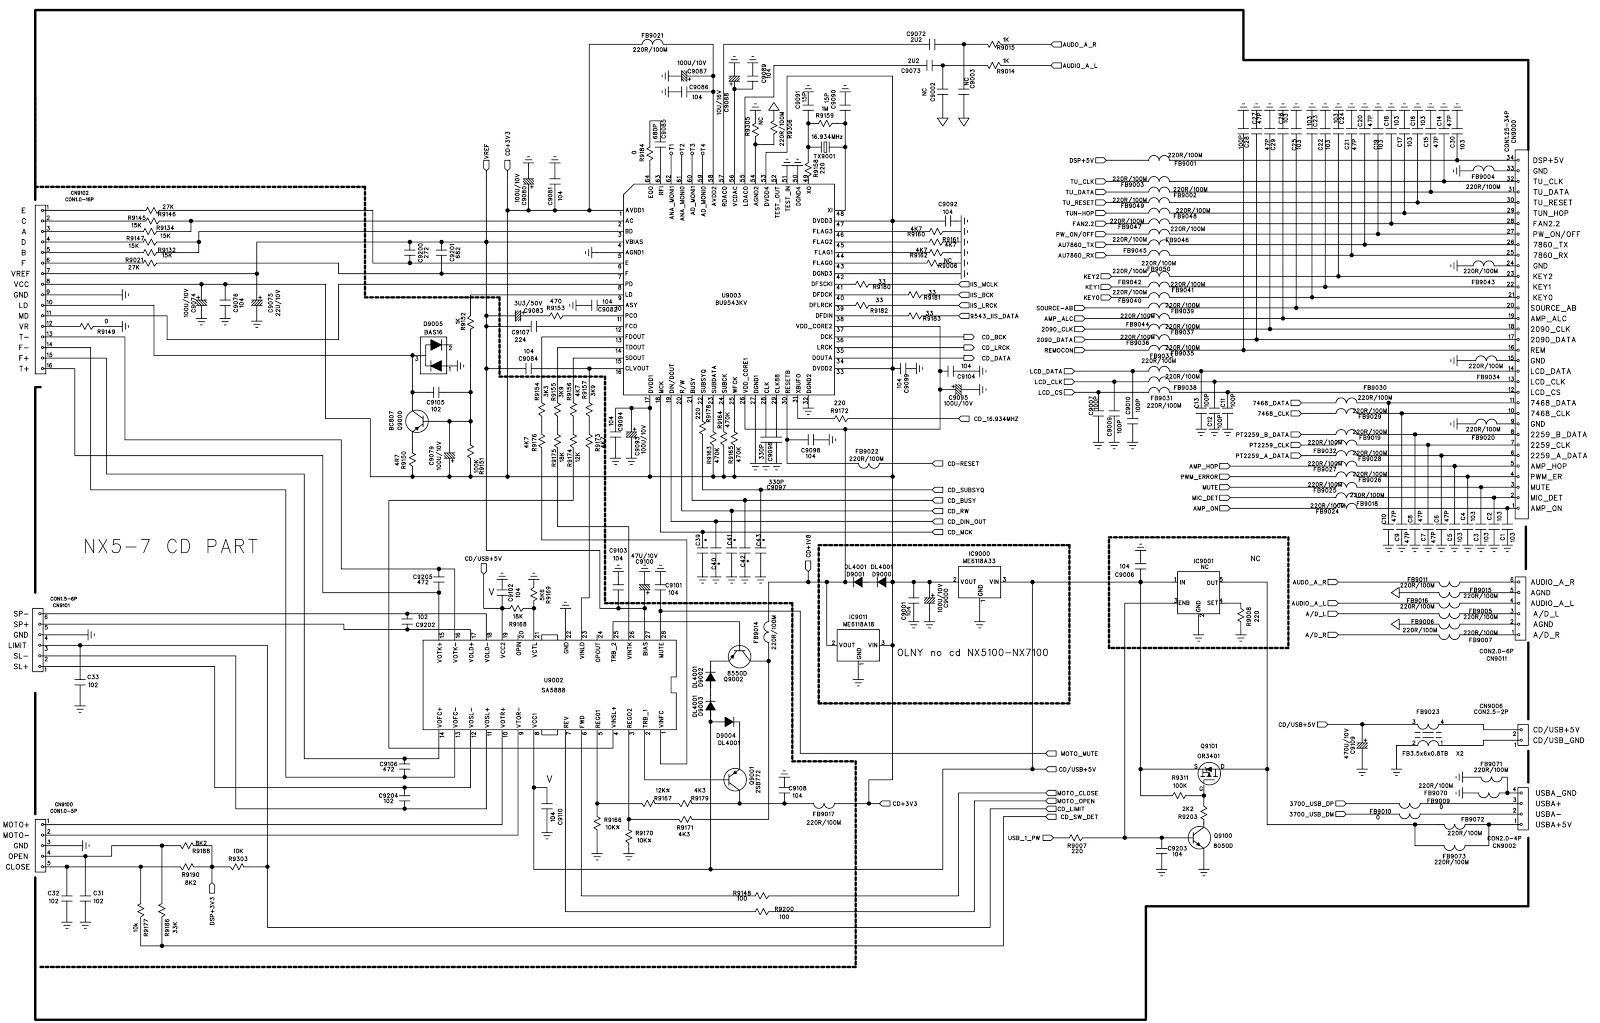 Circuit Board Schematic